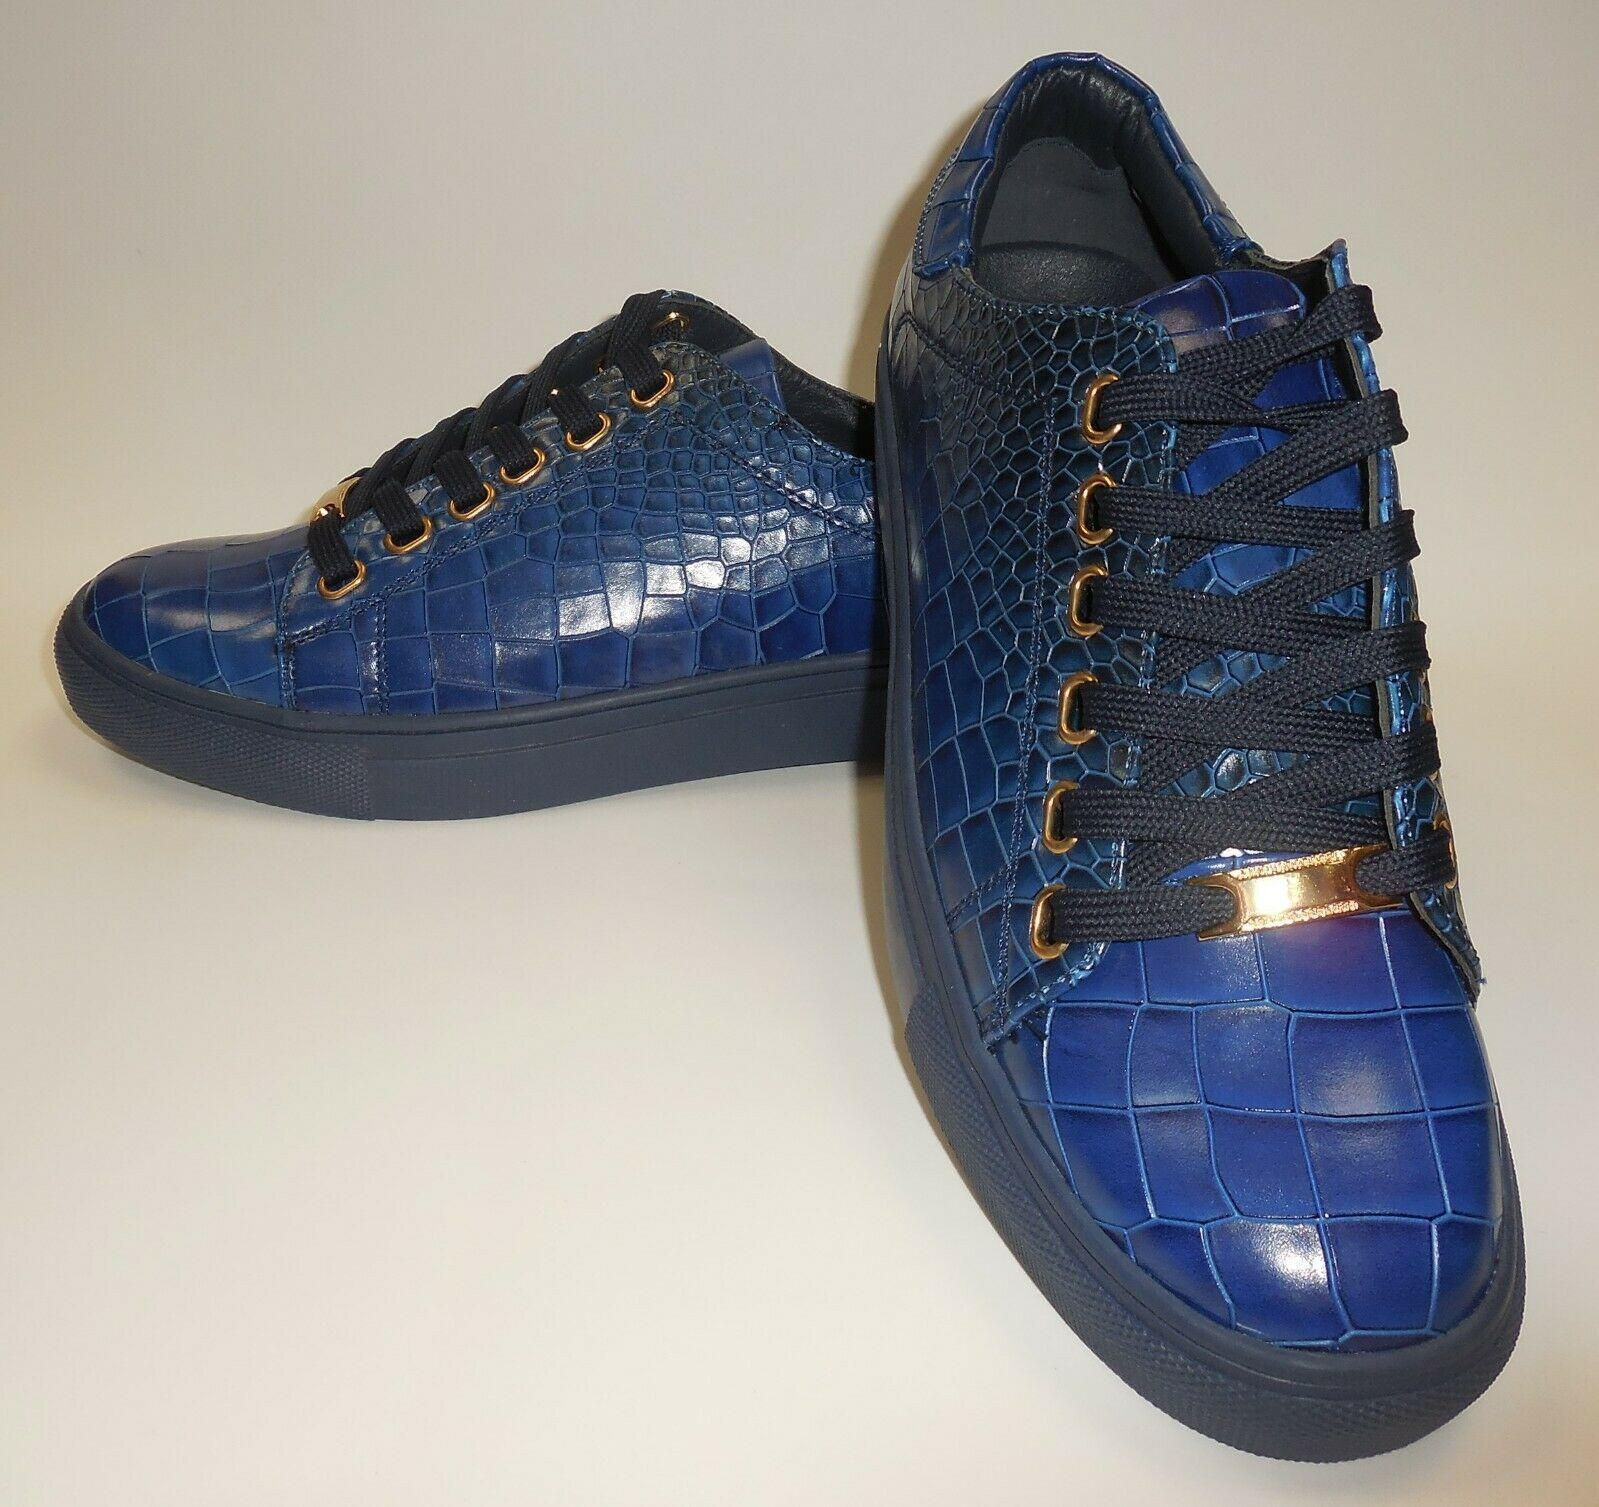 Mens Cool Royal bluee Croco Embossed Dress Sneakers Rubber Sole NY718 6730